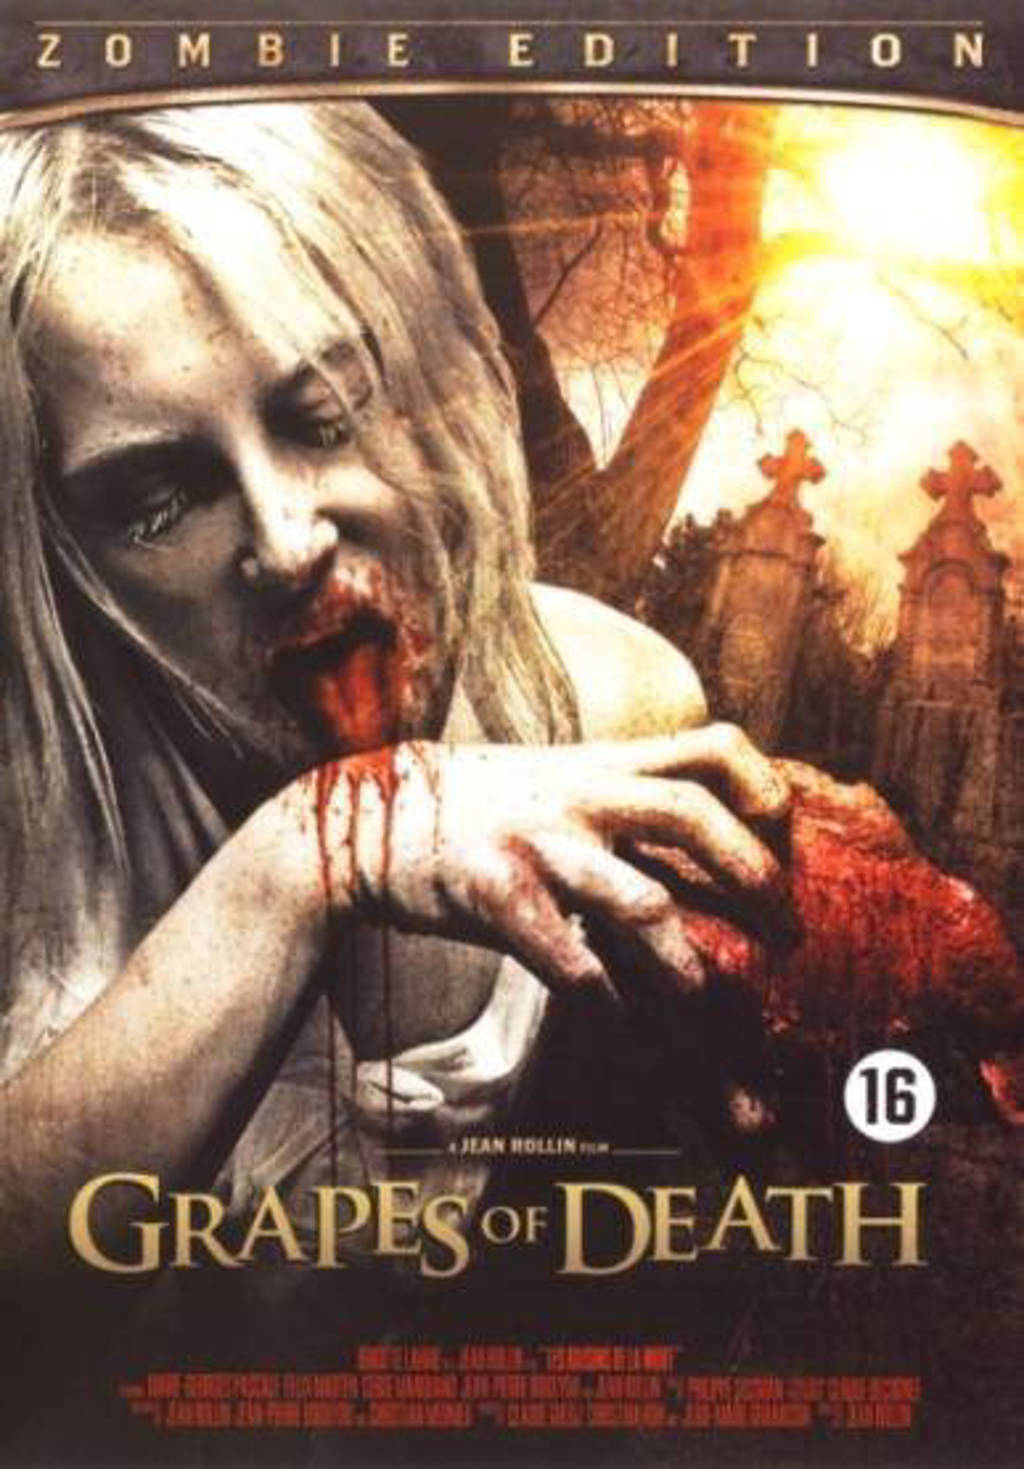 Grapes of death (DVD)